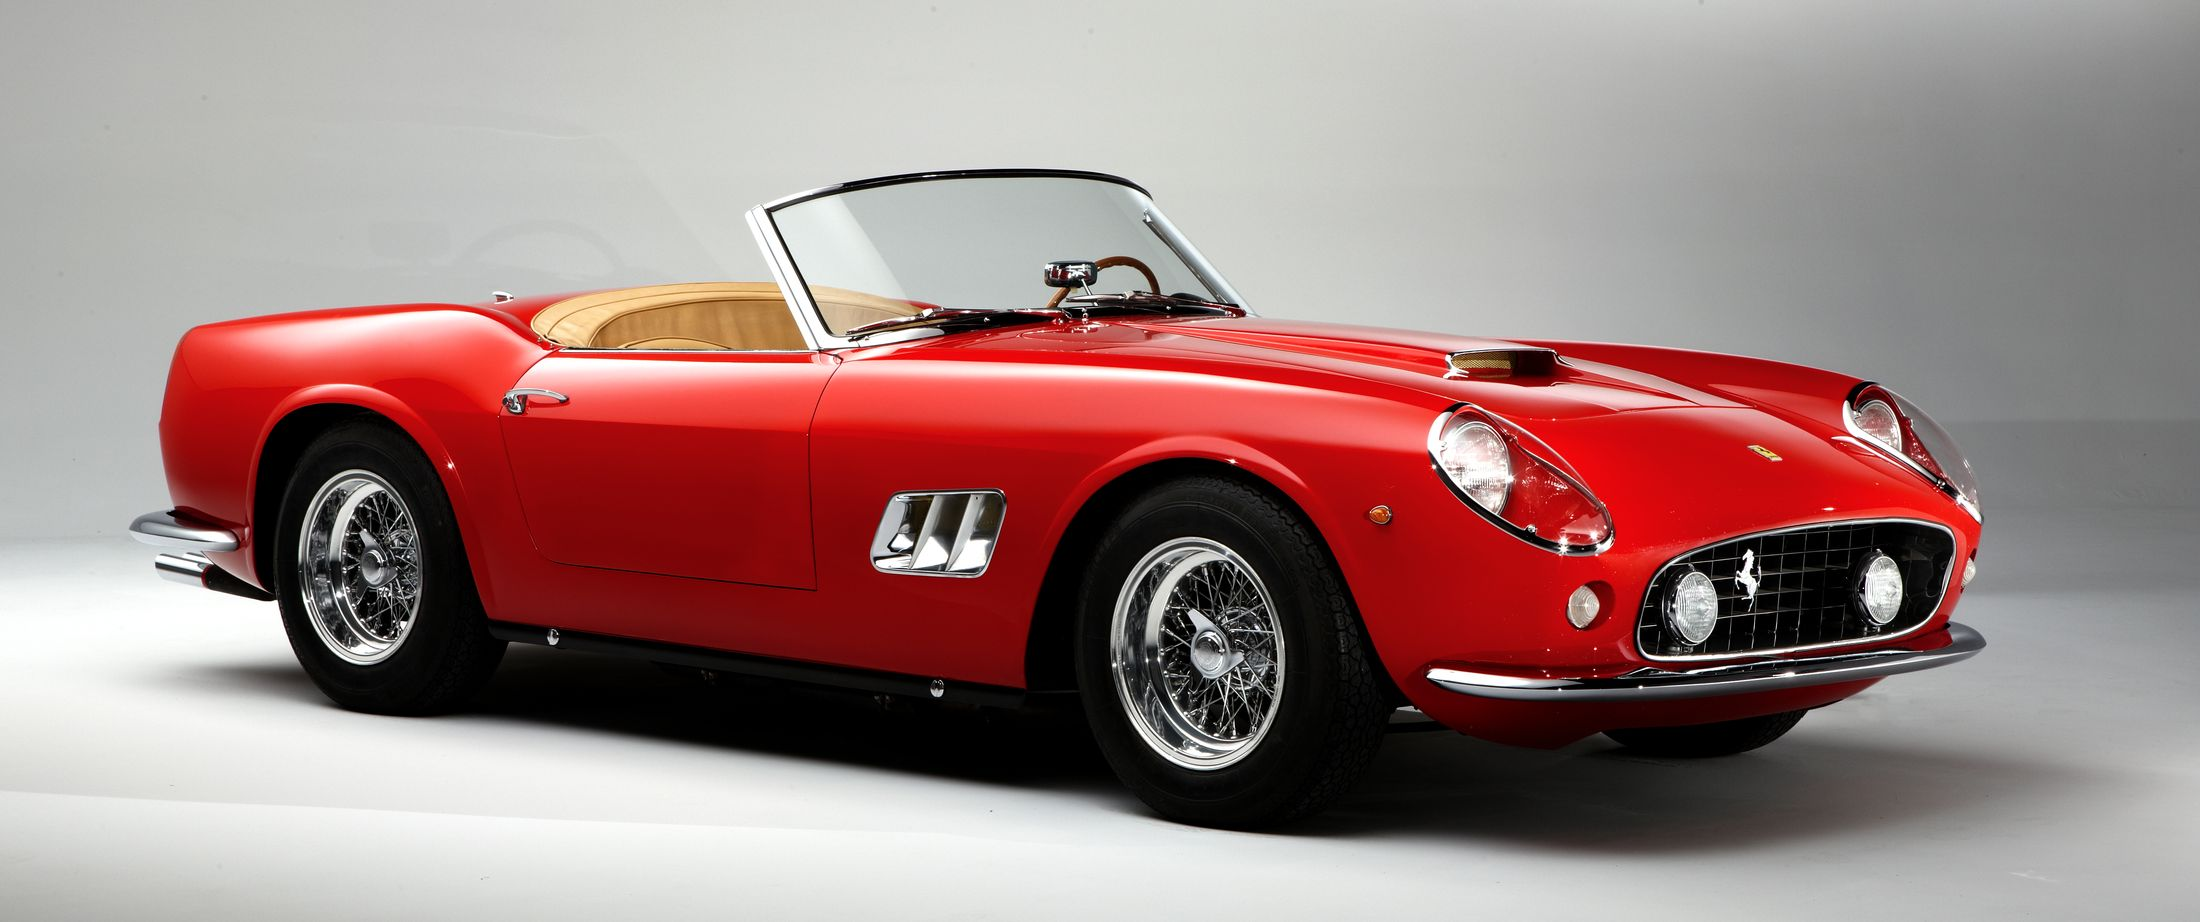 1961-Ferrari-250-GT-California